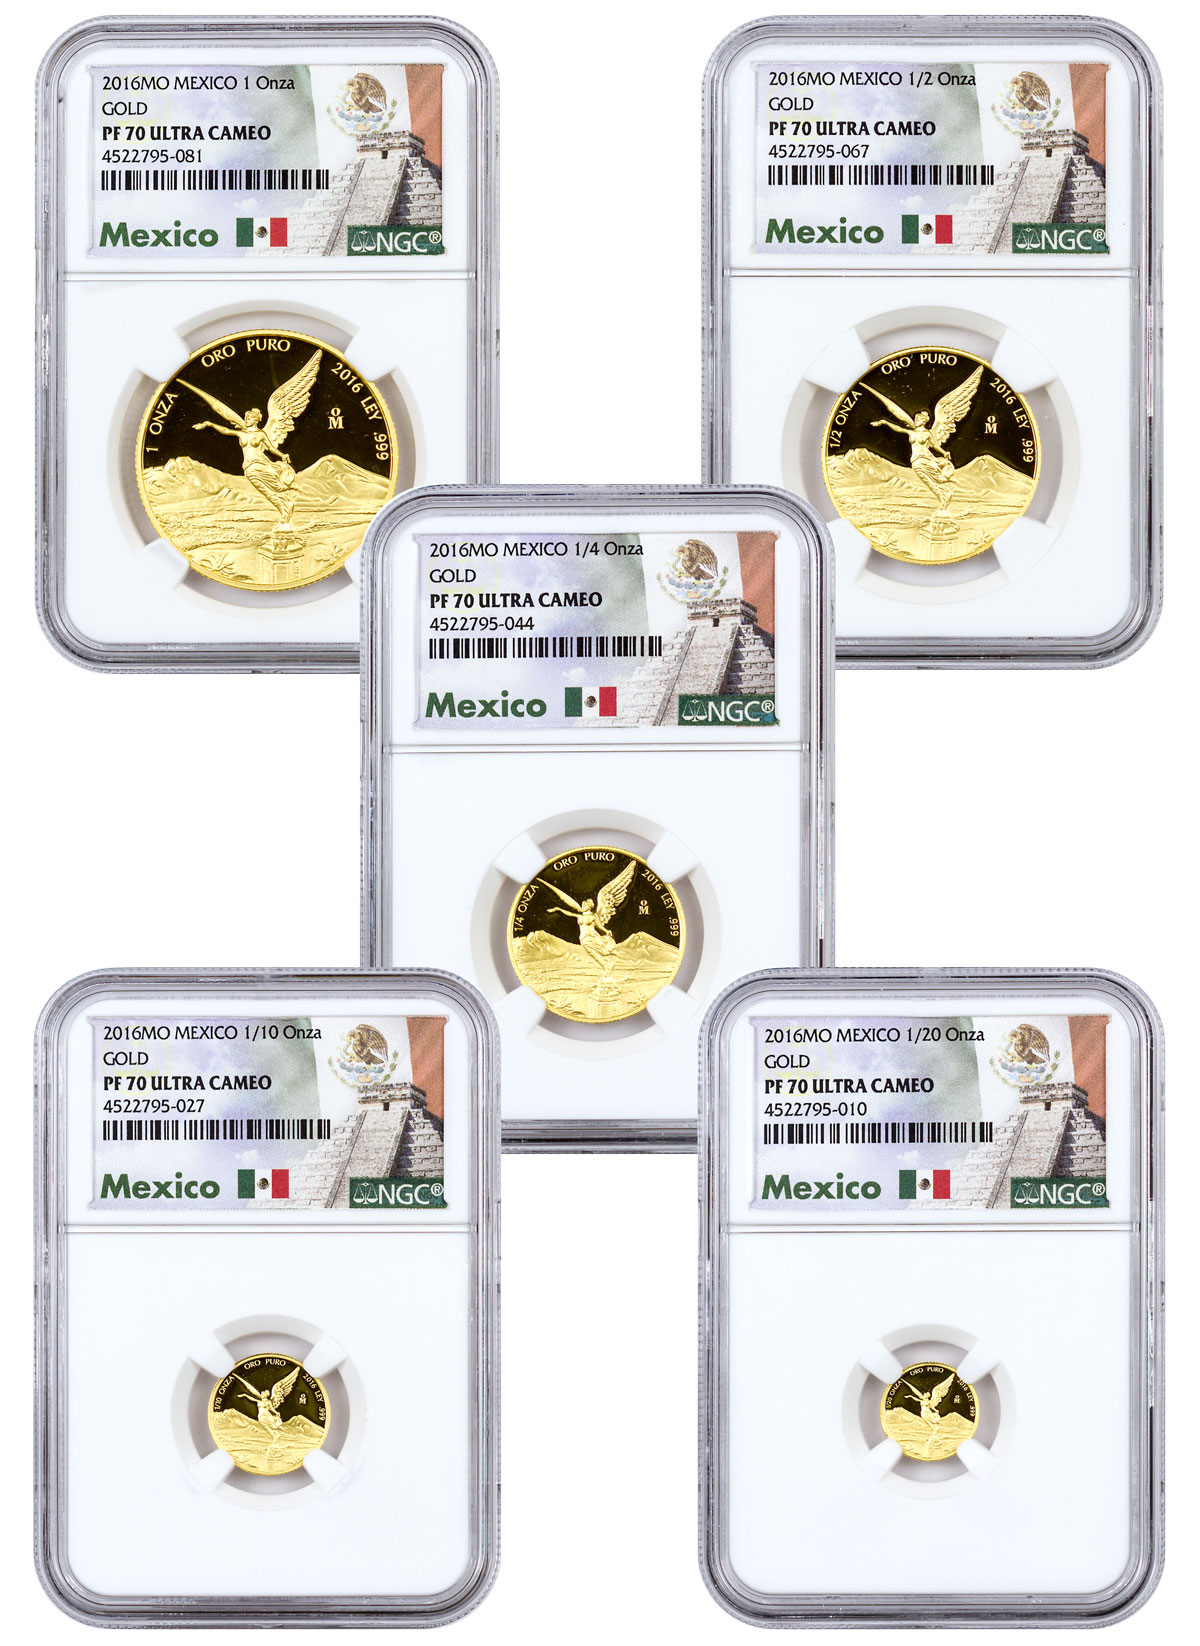 2016 Mexico Gold Libertad 5-Coin Proof Set NGC PF70 UC (Exclusive Mexico Label)